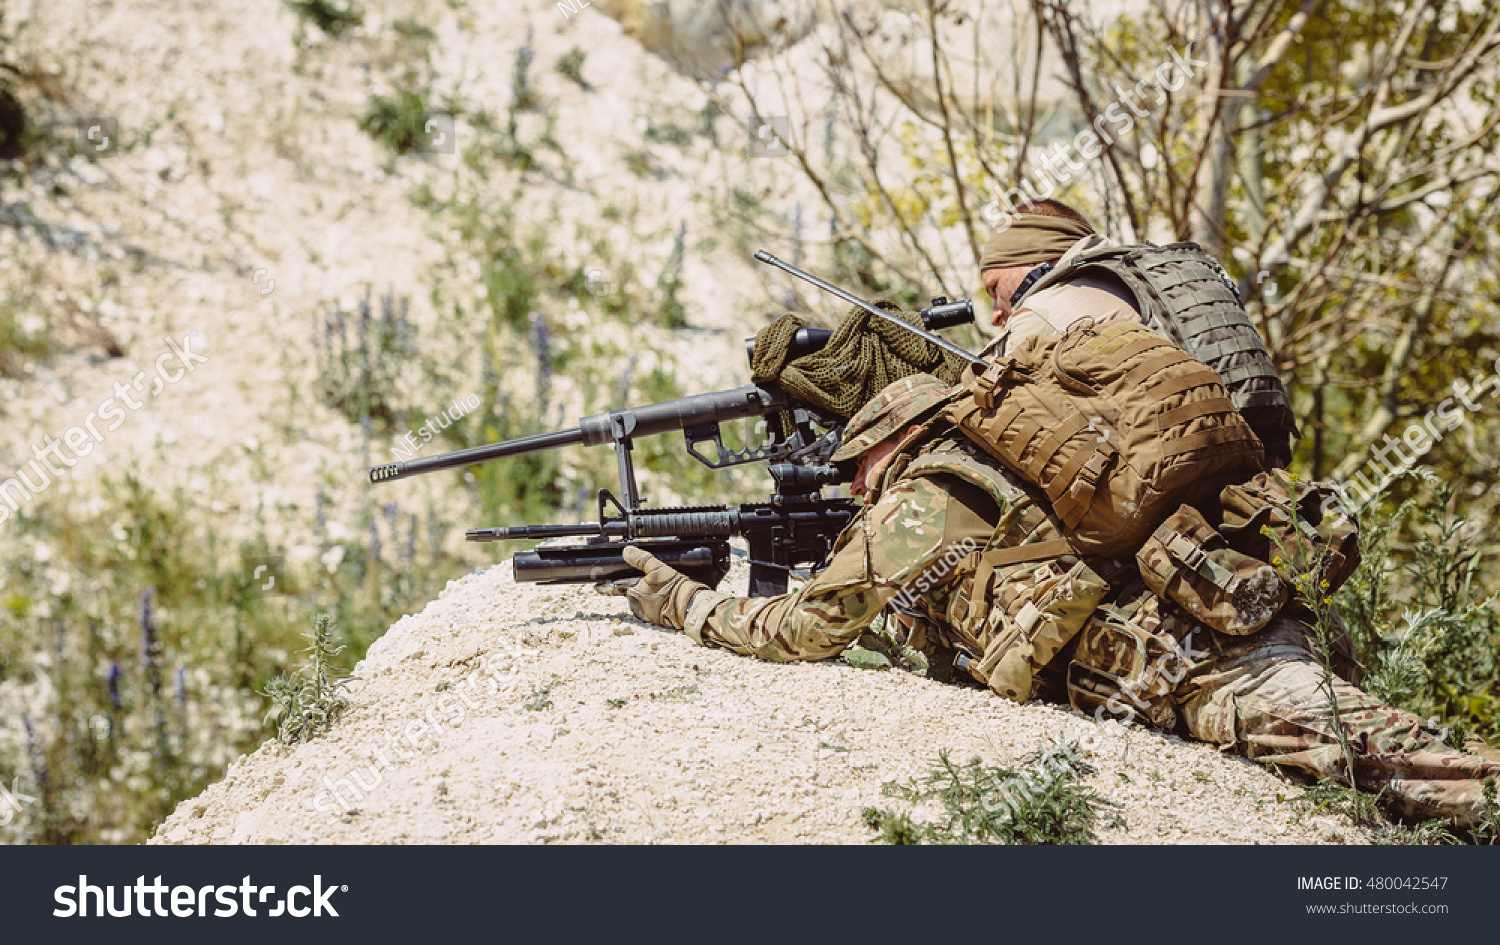 British Army sniper during the military operation in the mountain. war, army,  technology